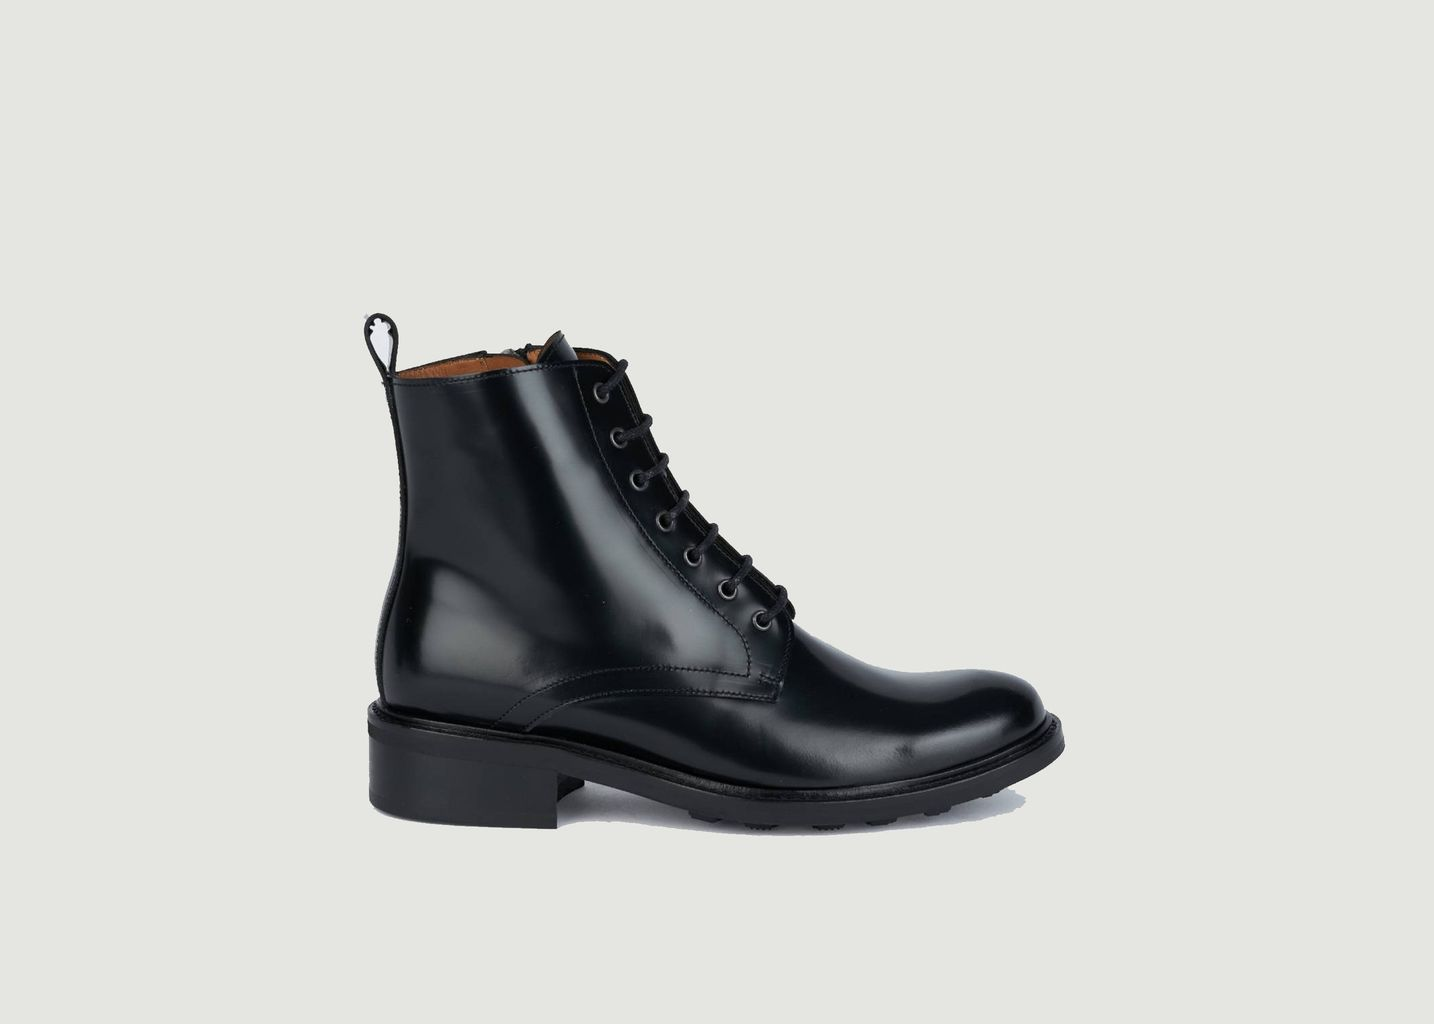 Bottines en cuir polido à lacets 7426 - Anthology Paris